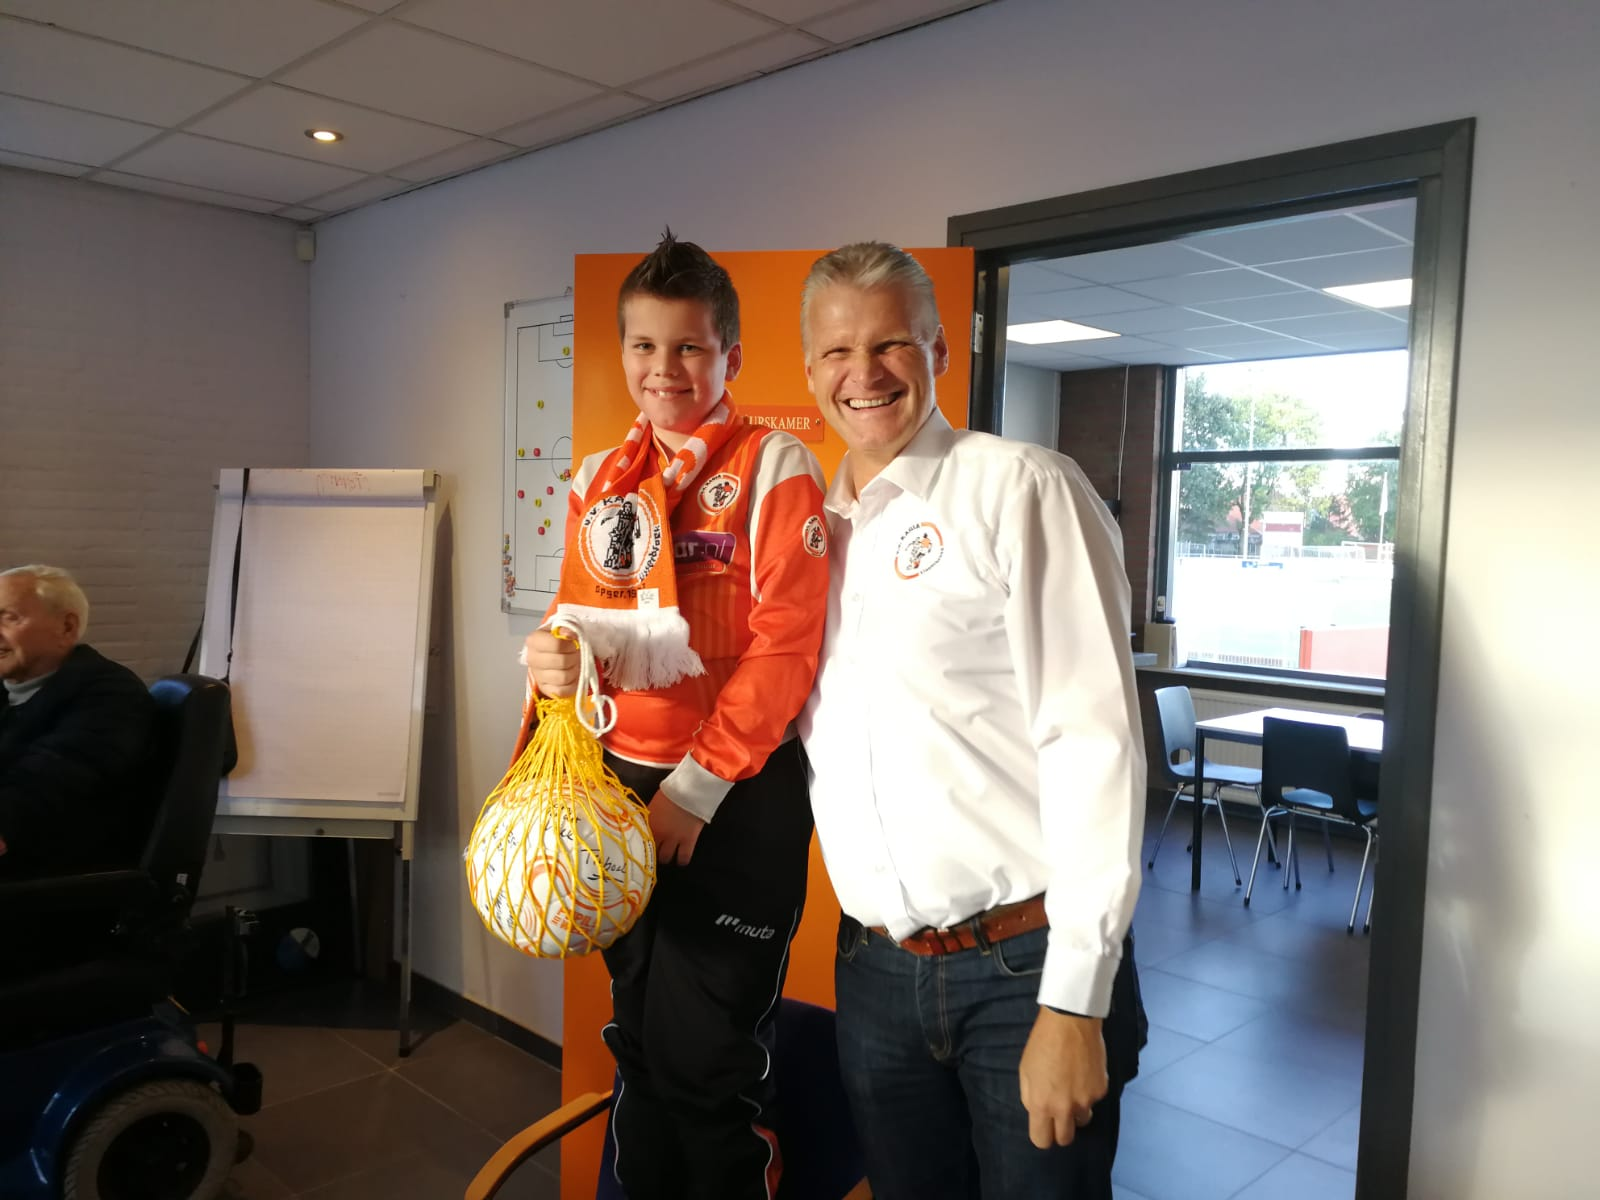 Pupil van de week: Mike Pool